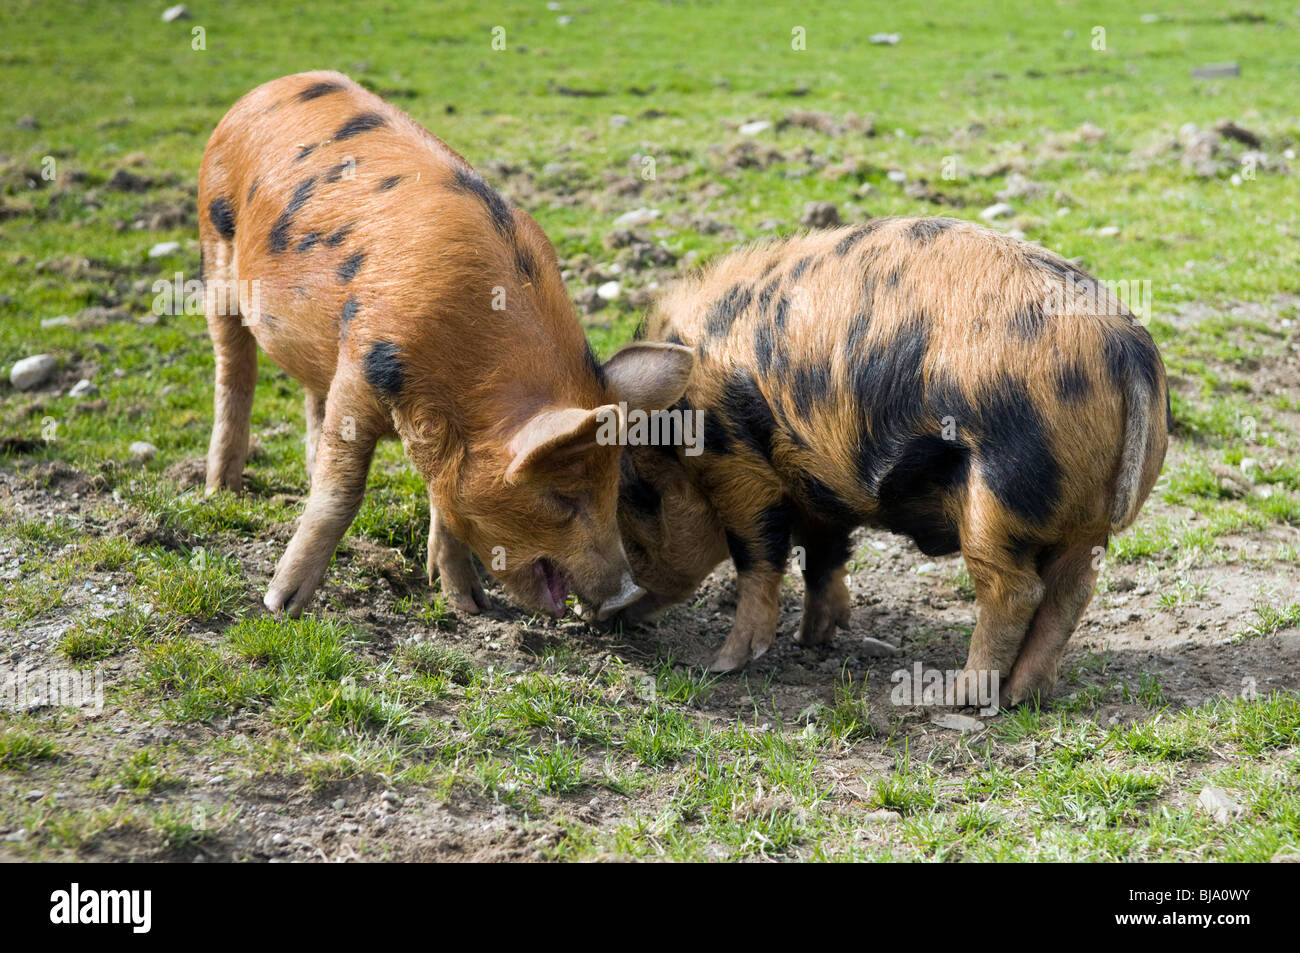 Spotted Kune kune and wild boar cross free range pigs grazing in field - Stock Image